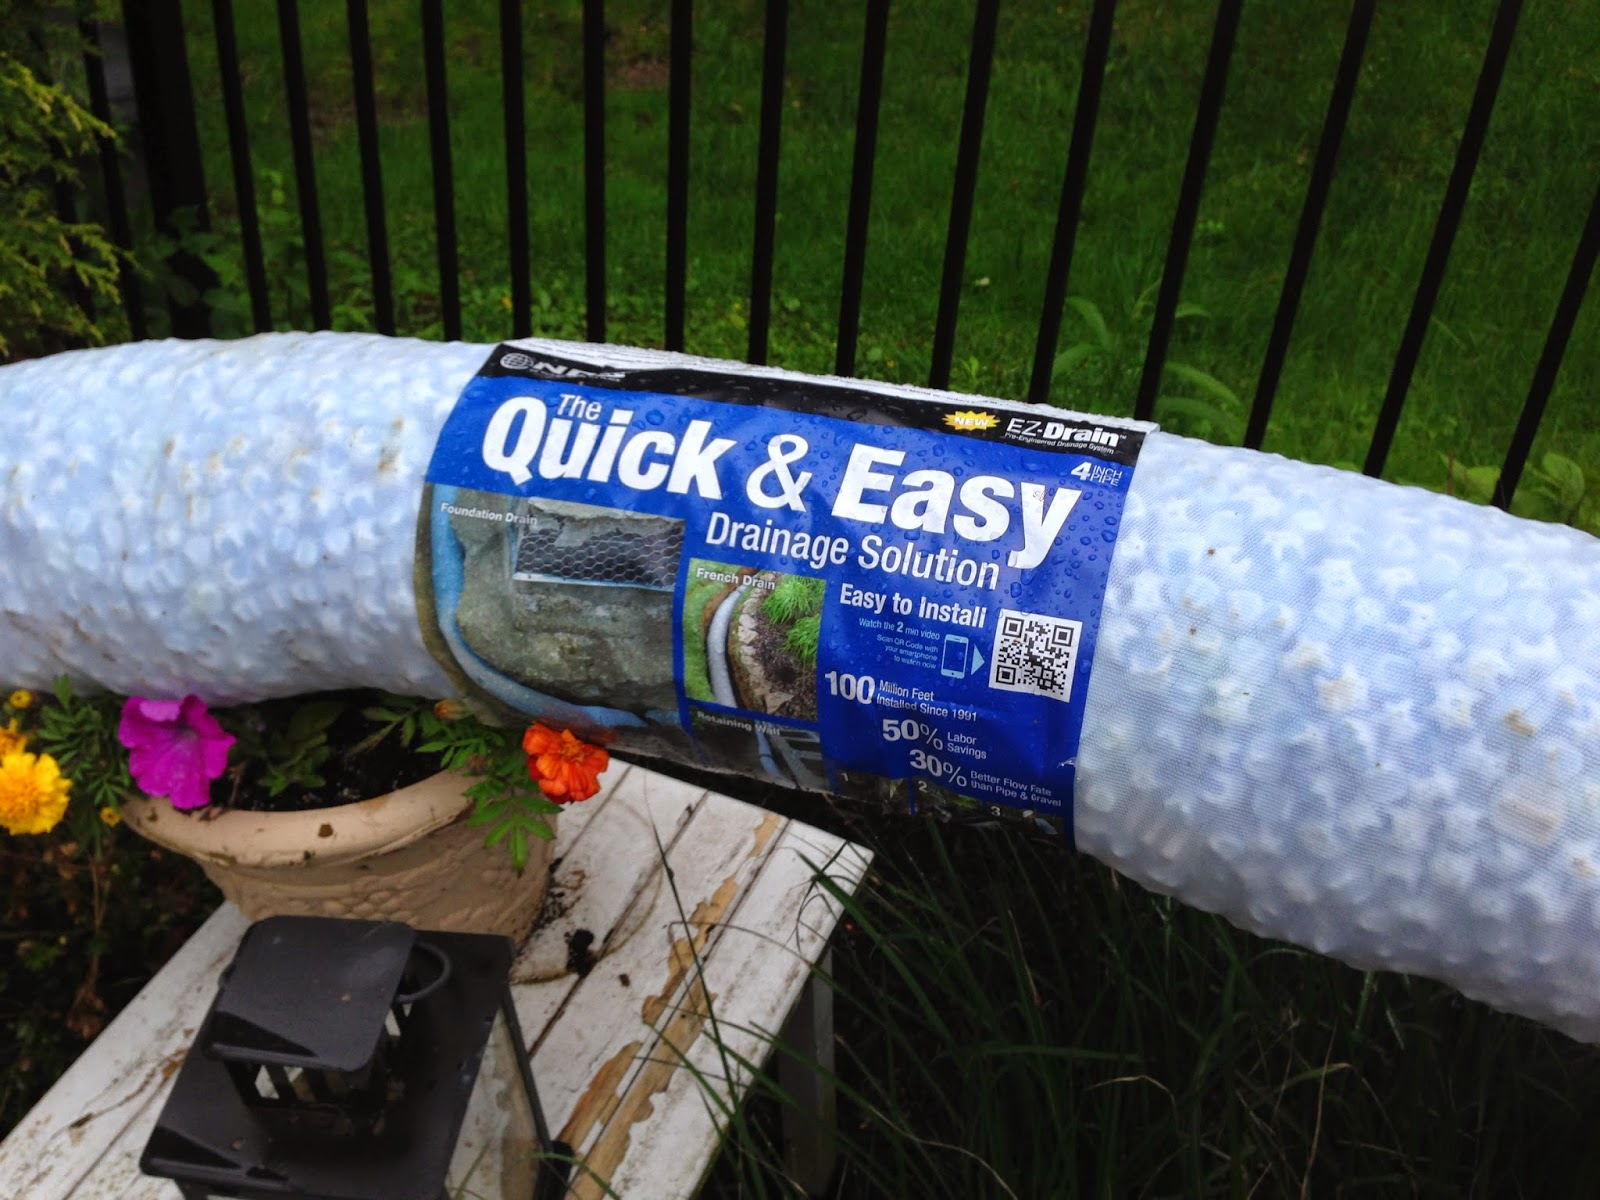 Quick and easy drainage solution for french drains around pool-www.goldenboysandme.com